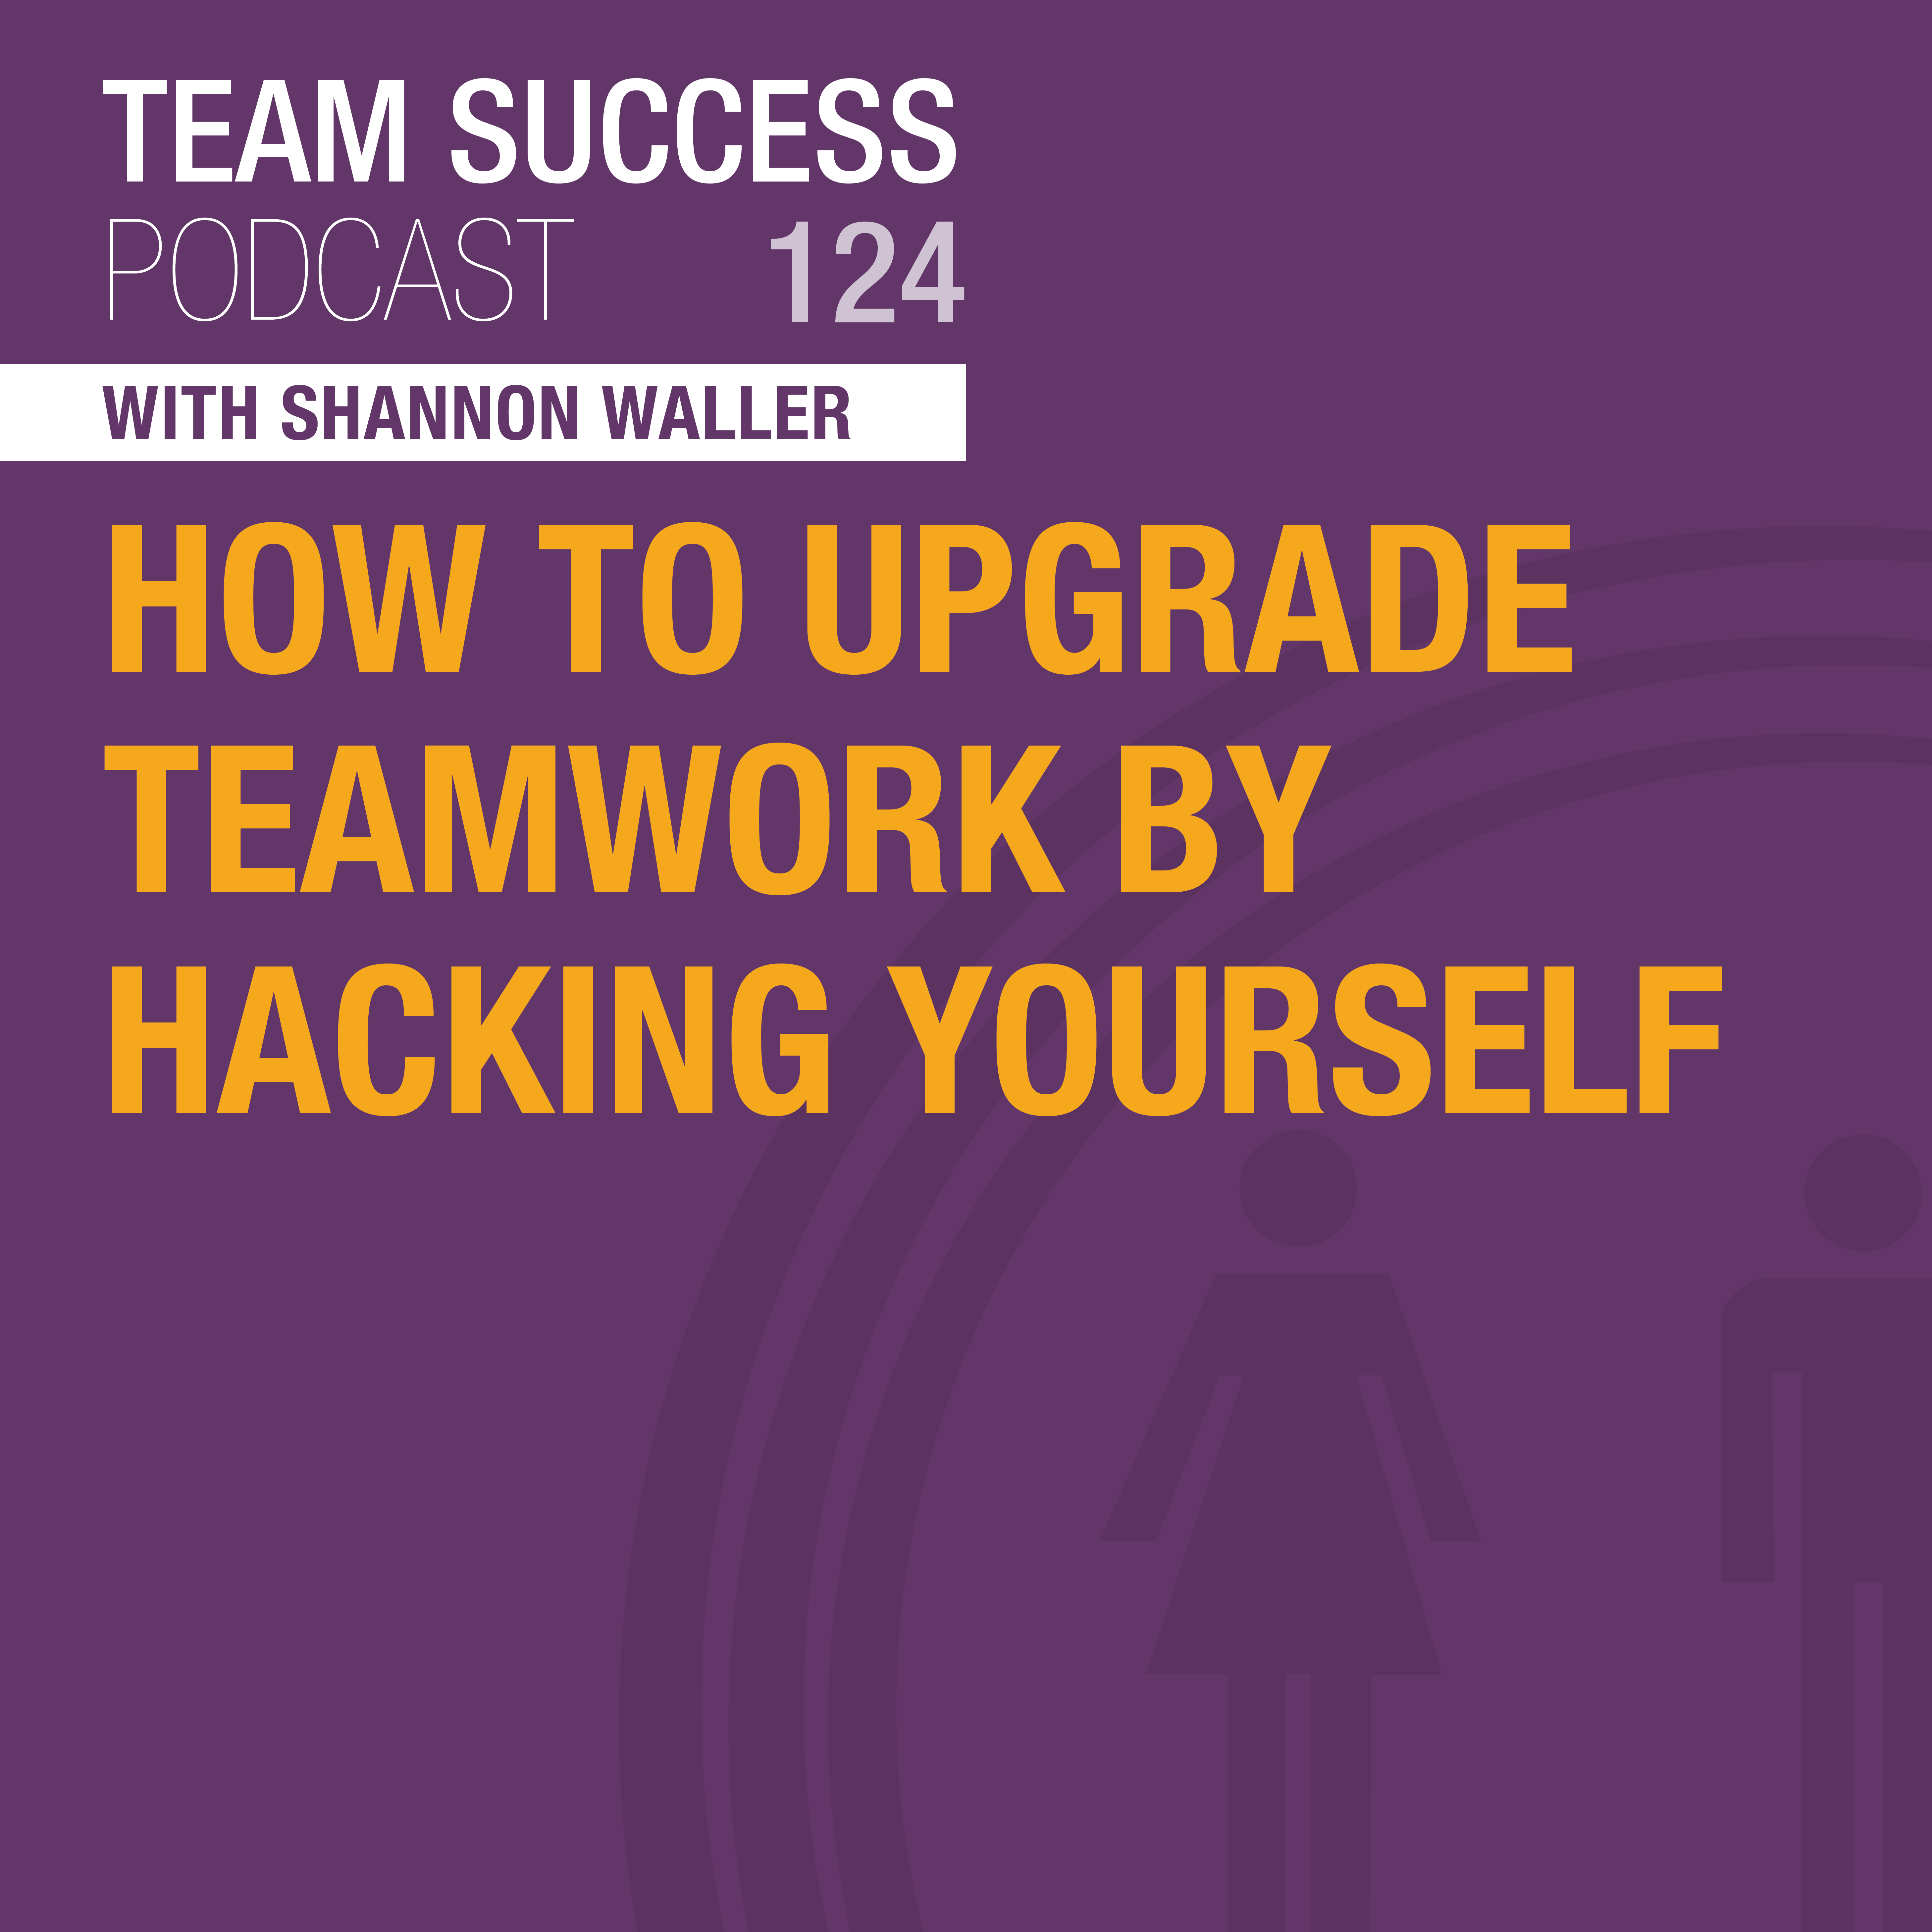 How To Upgrade Teamwork By Hacking Yourself